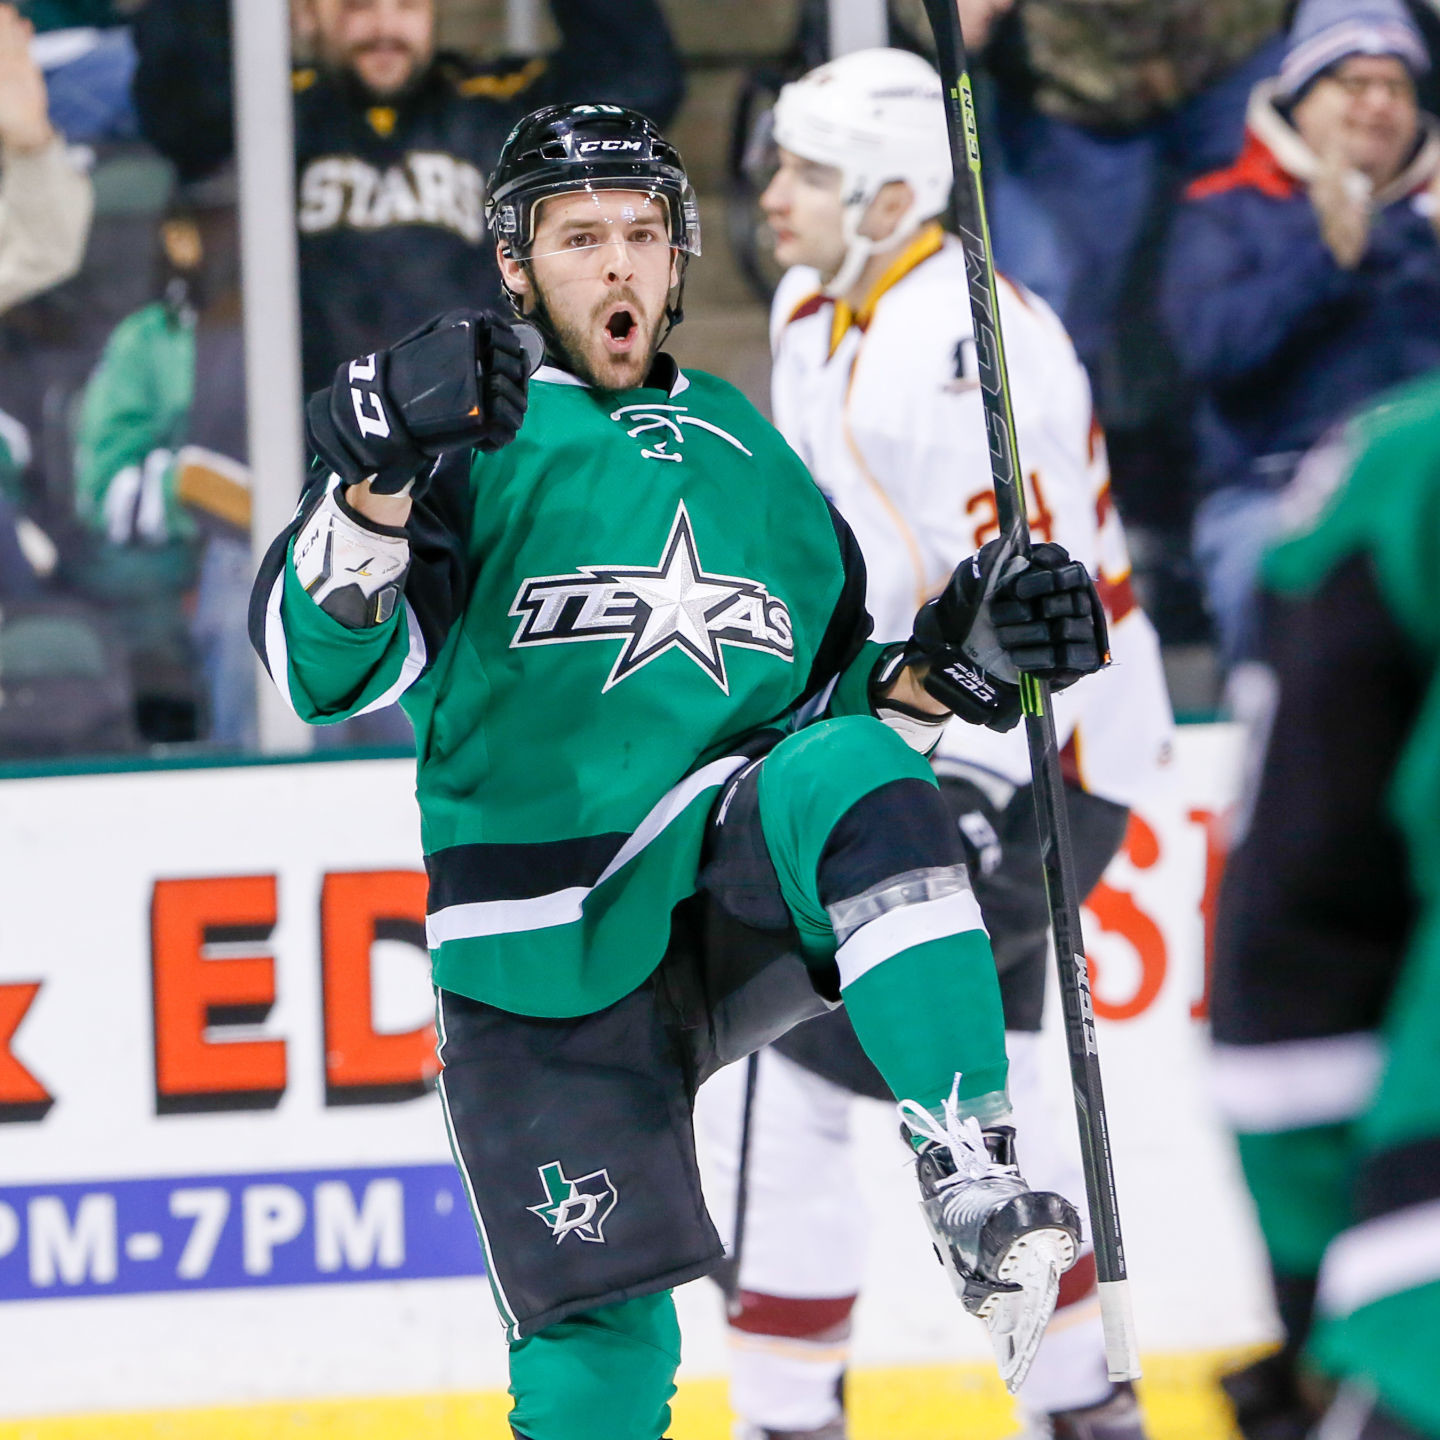 Caleb Herbert scored a goal in regulation and another in the shootout as the Texas Stars fell to the Cleveland Monsters 2-1 in a shootout Saturday night at the HEB Center.